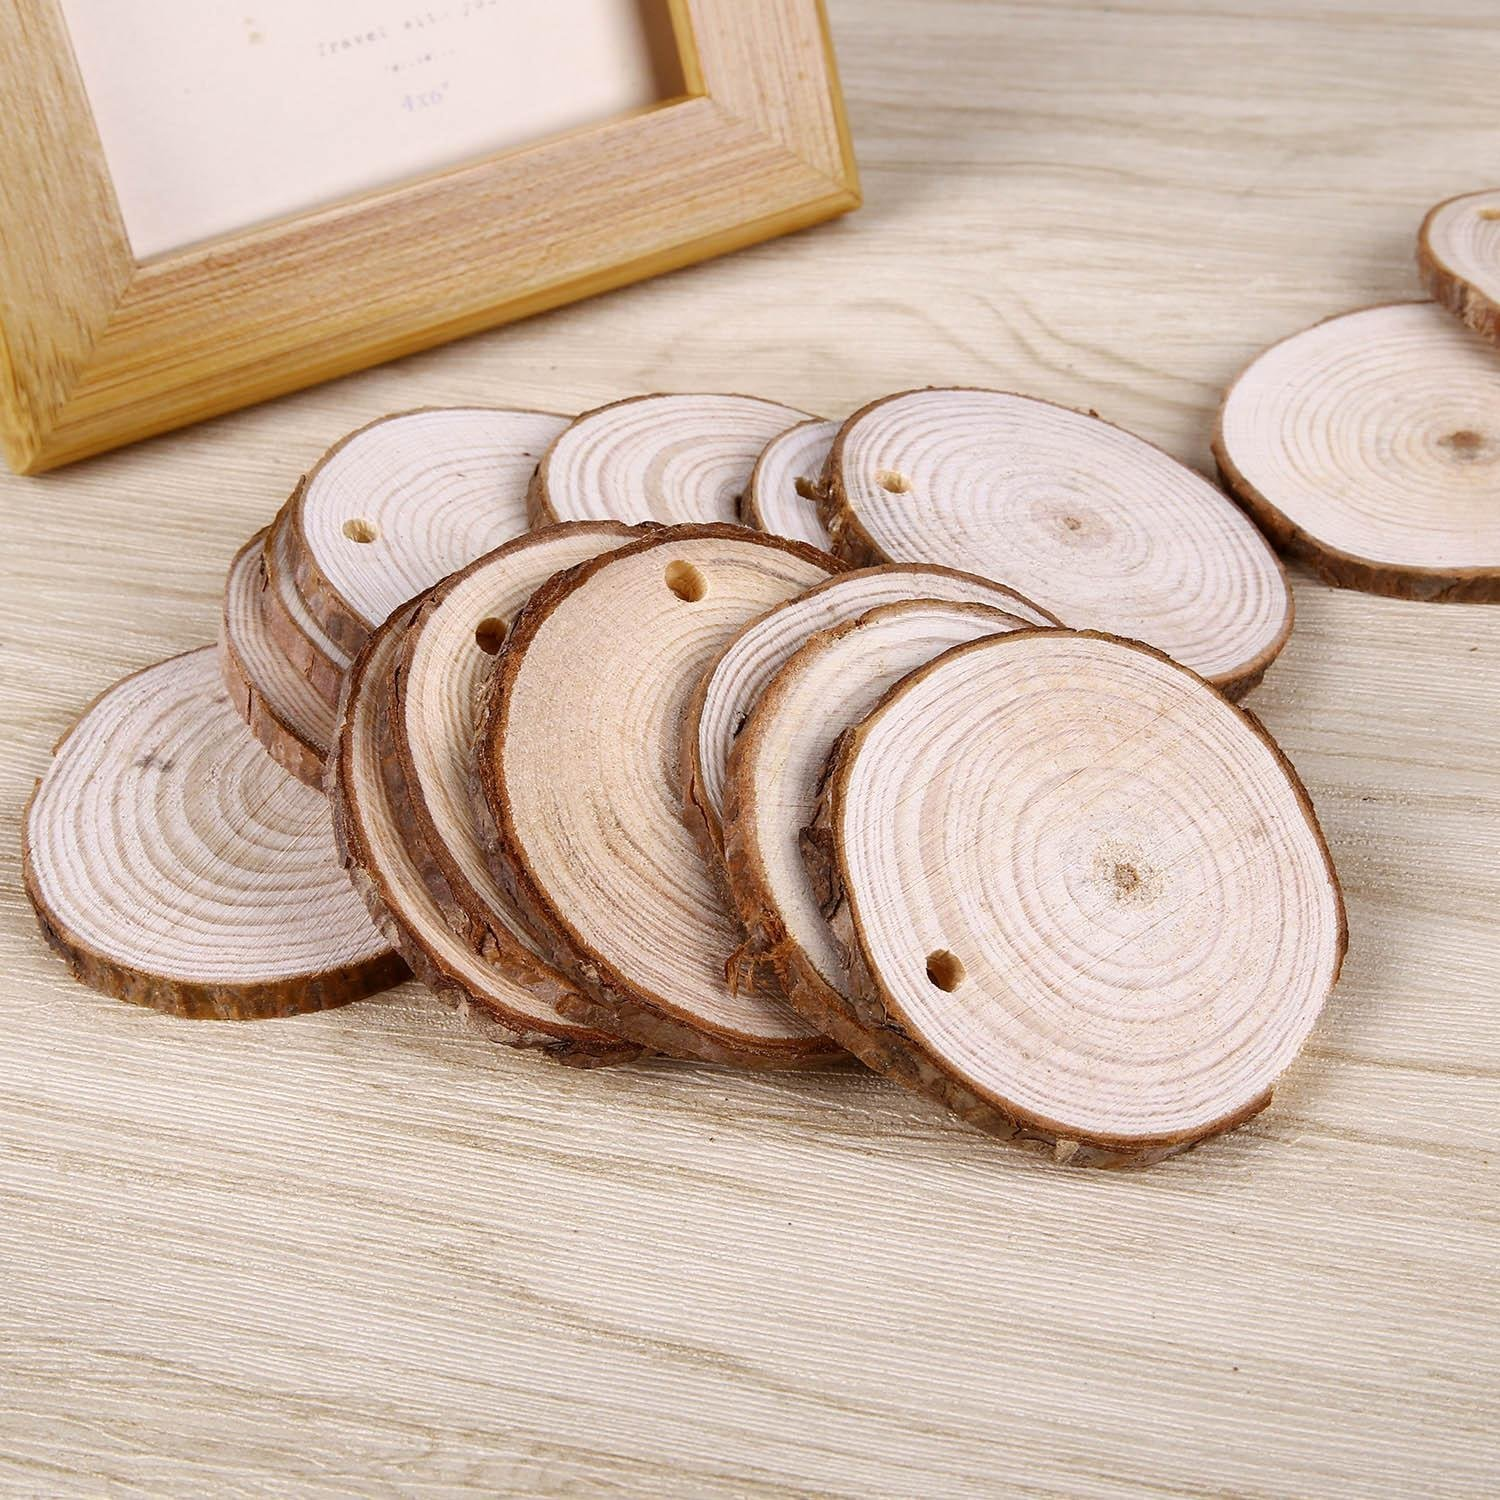 50pcs 1.9 2.4 Wood Slices with Holes and 33 Feet Natrual Jute Twine for DIY Crafts Centerpieces by MAIYUAN